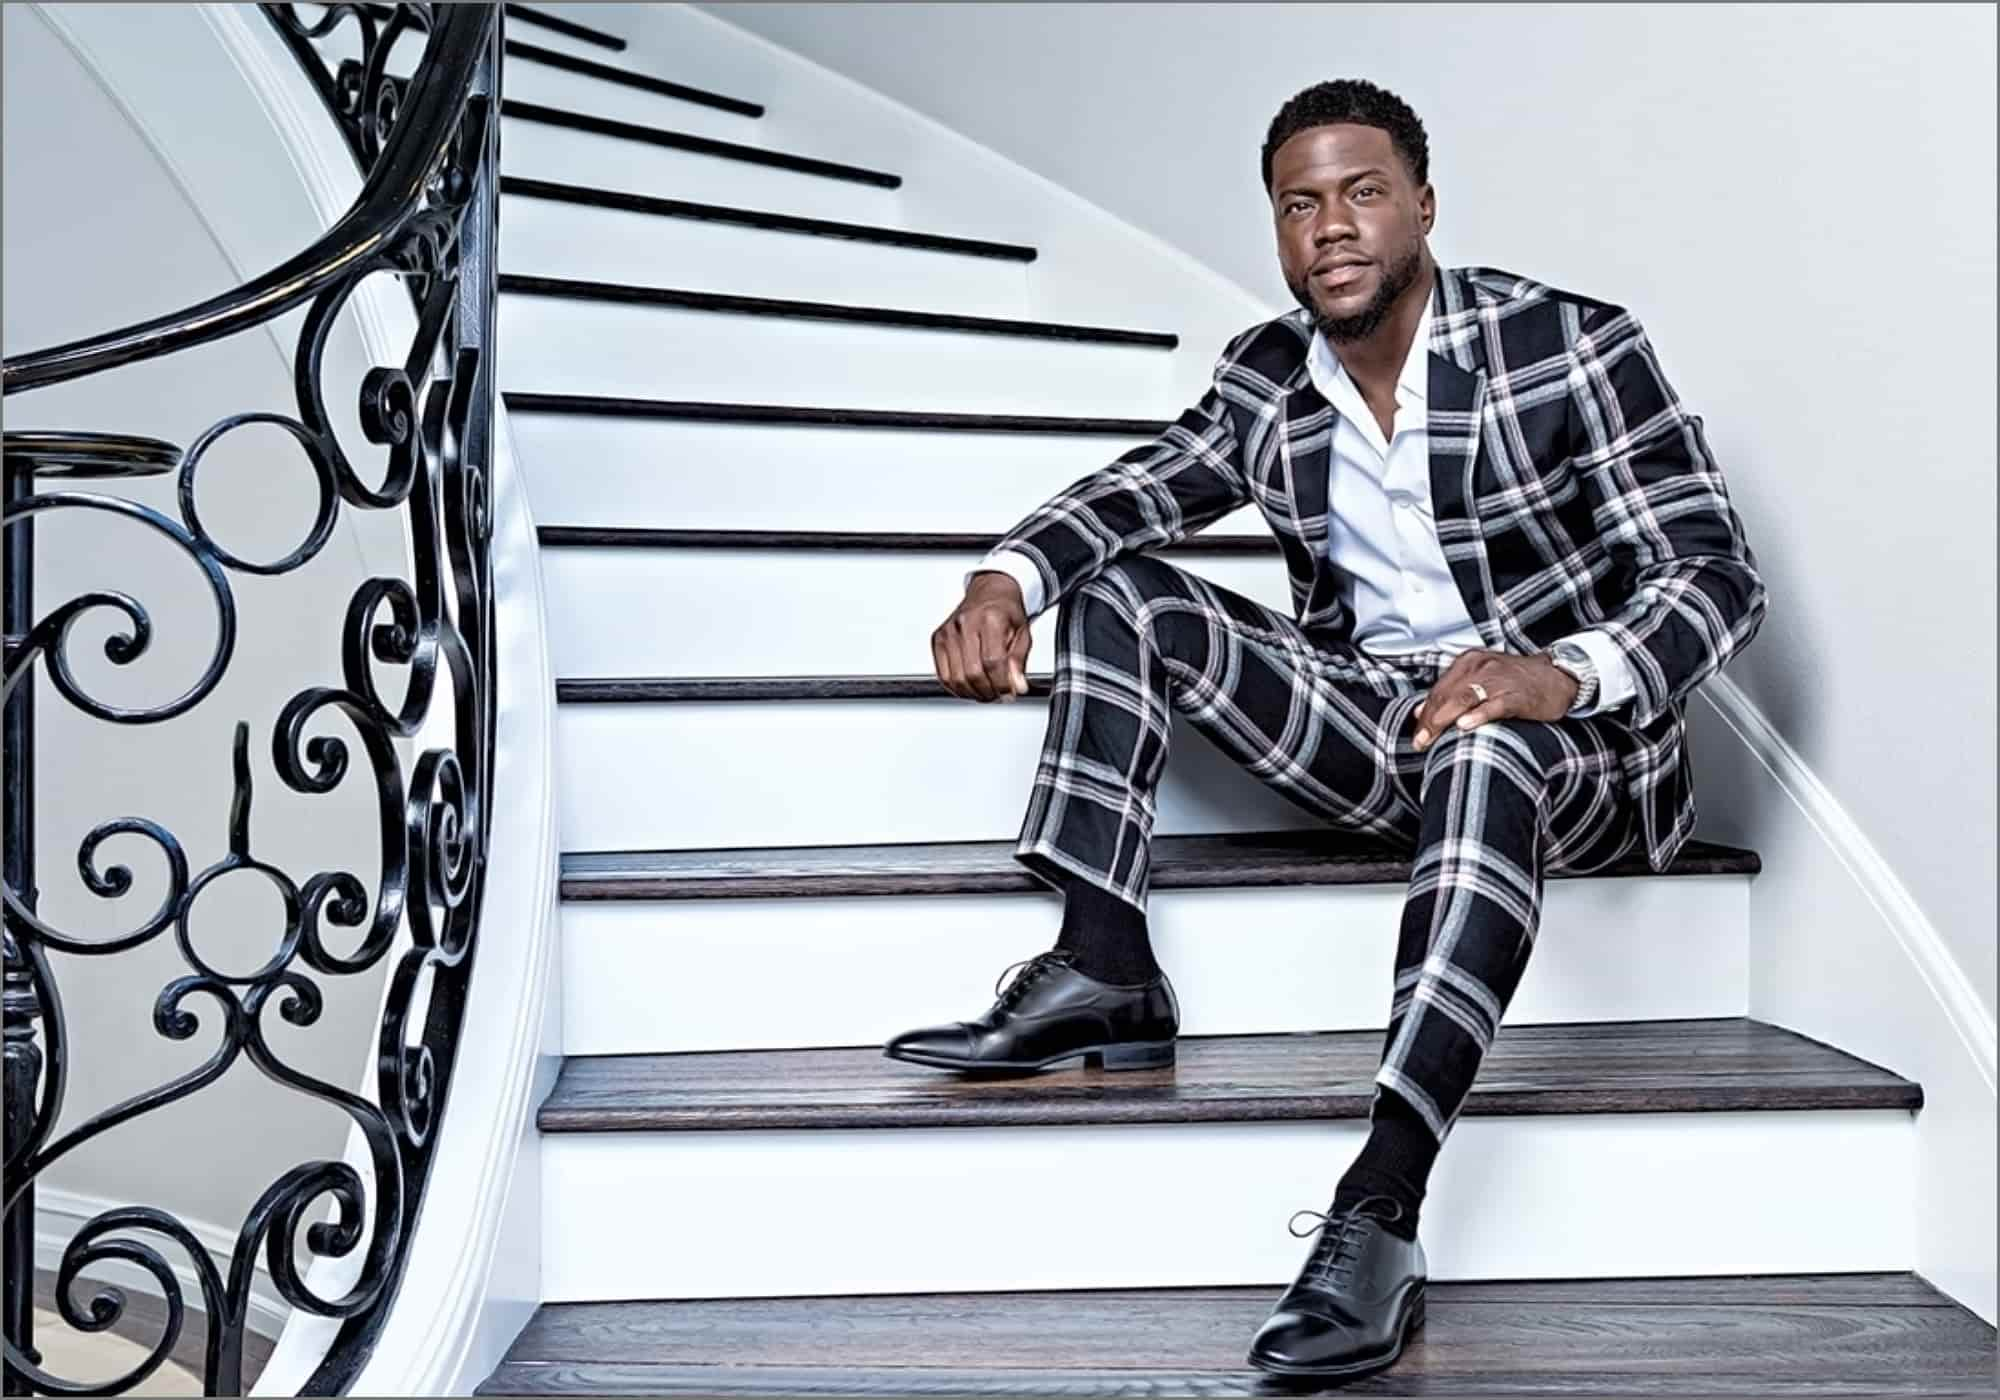 Kevin Hart Height: How Tall is Kevin Hart?